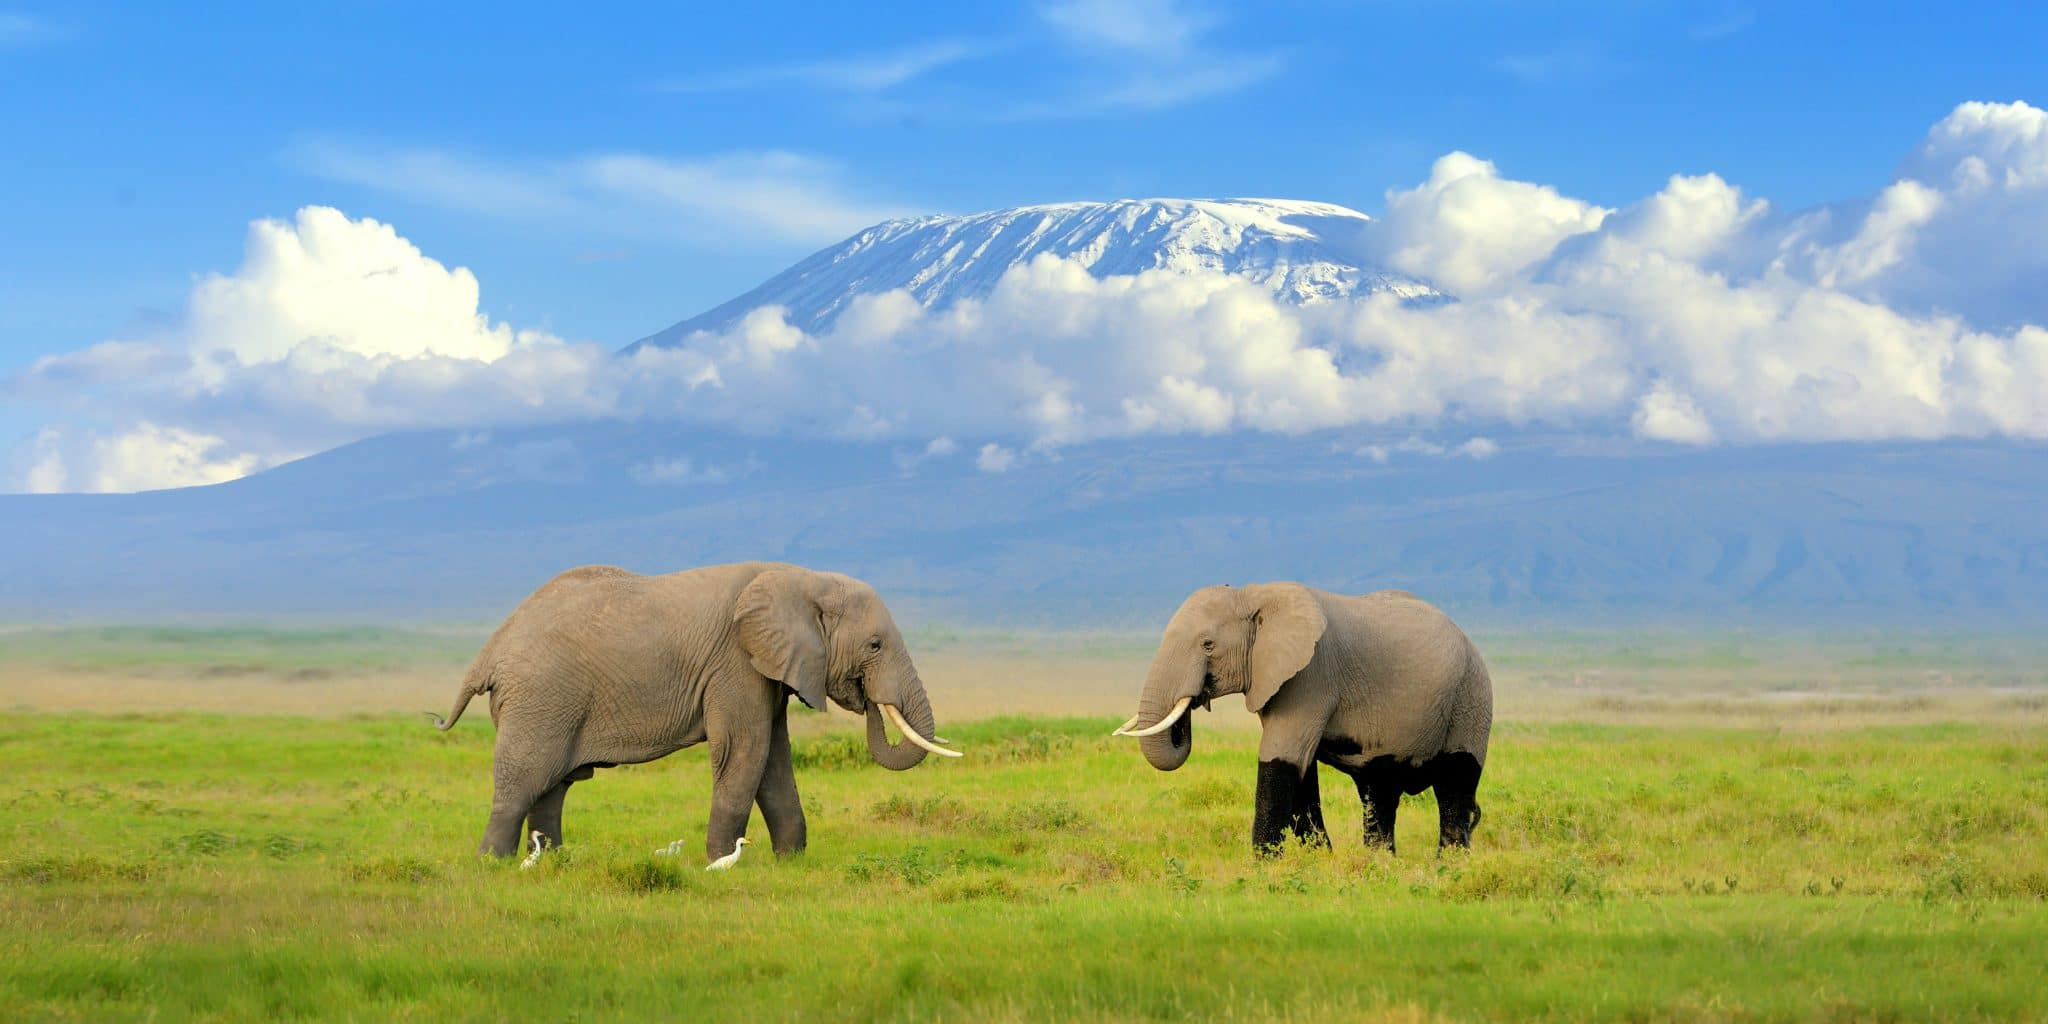 Elephants at Amboseli National Park with Mt. Kilimanjaro in background